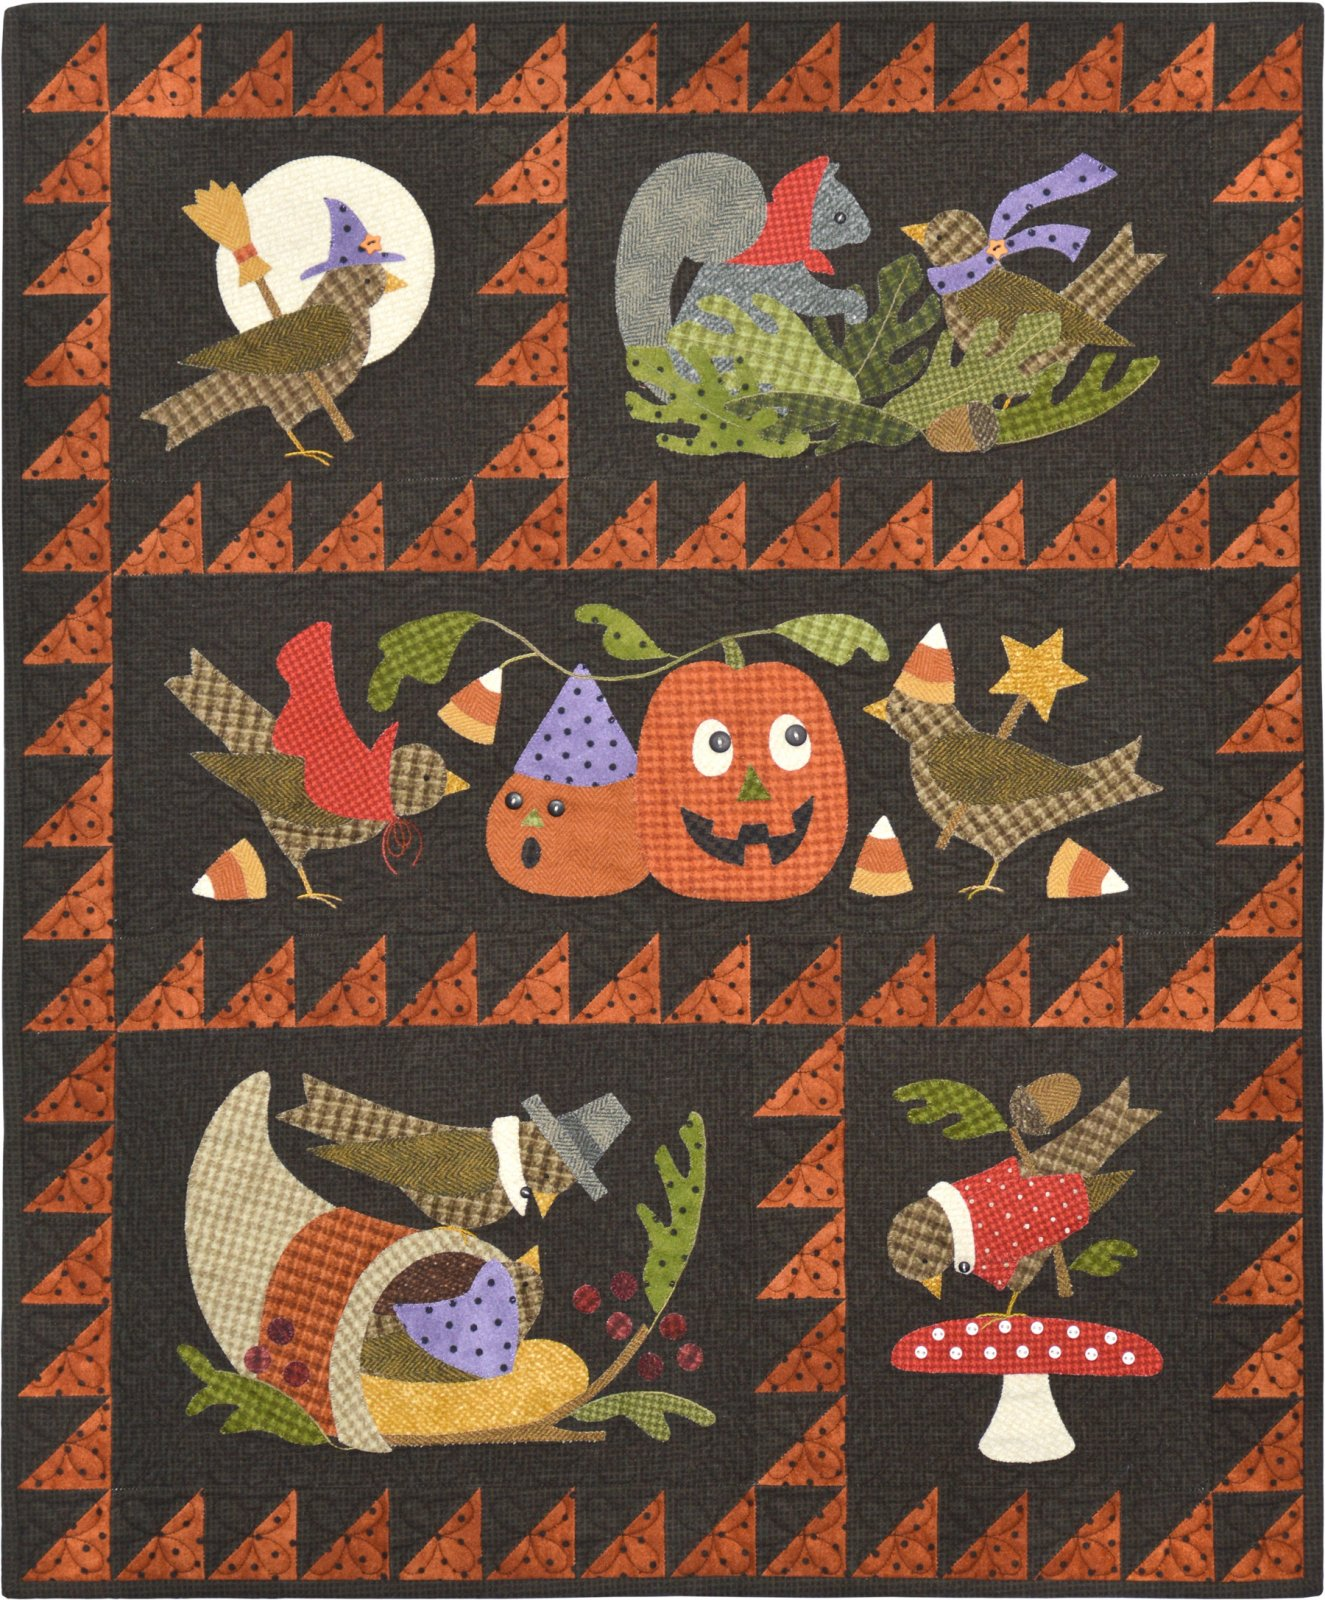 Bertie's Autumn quilt kit